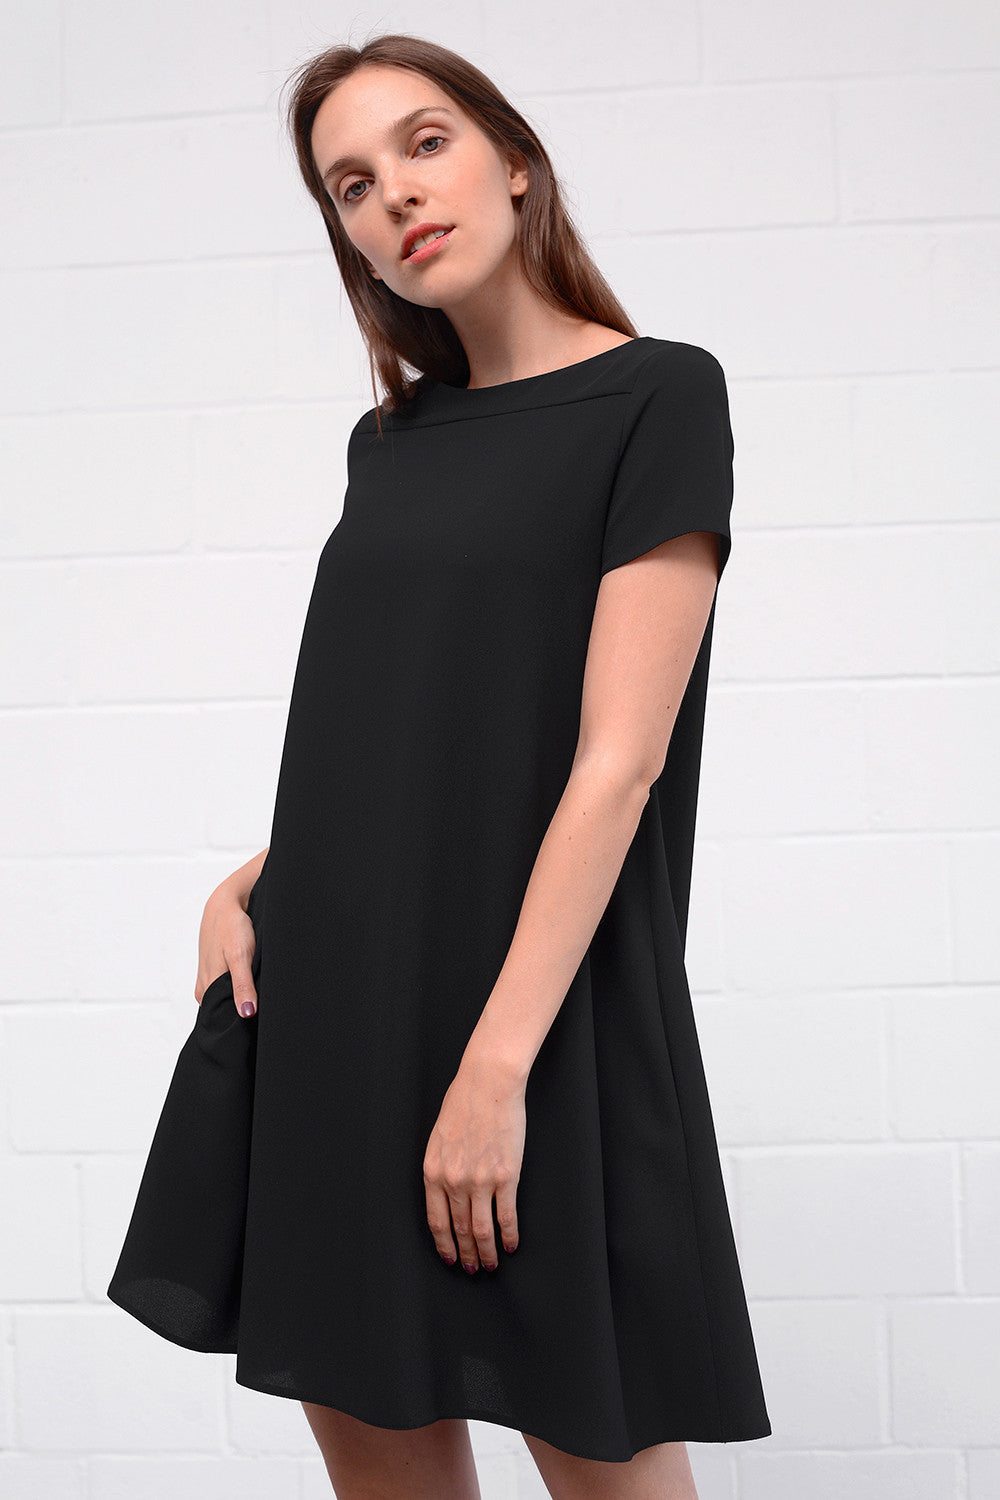 Apesia Dress - nero